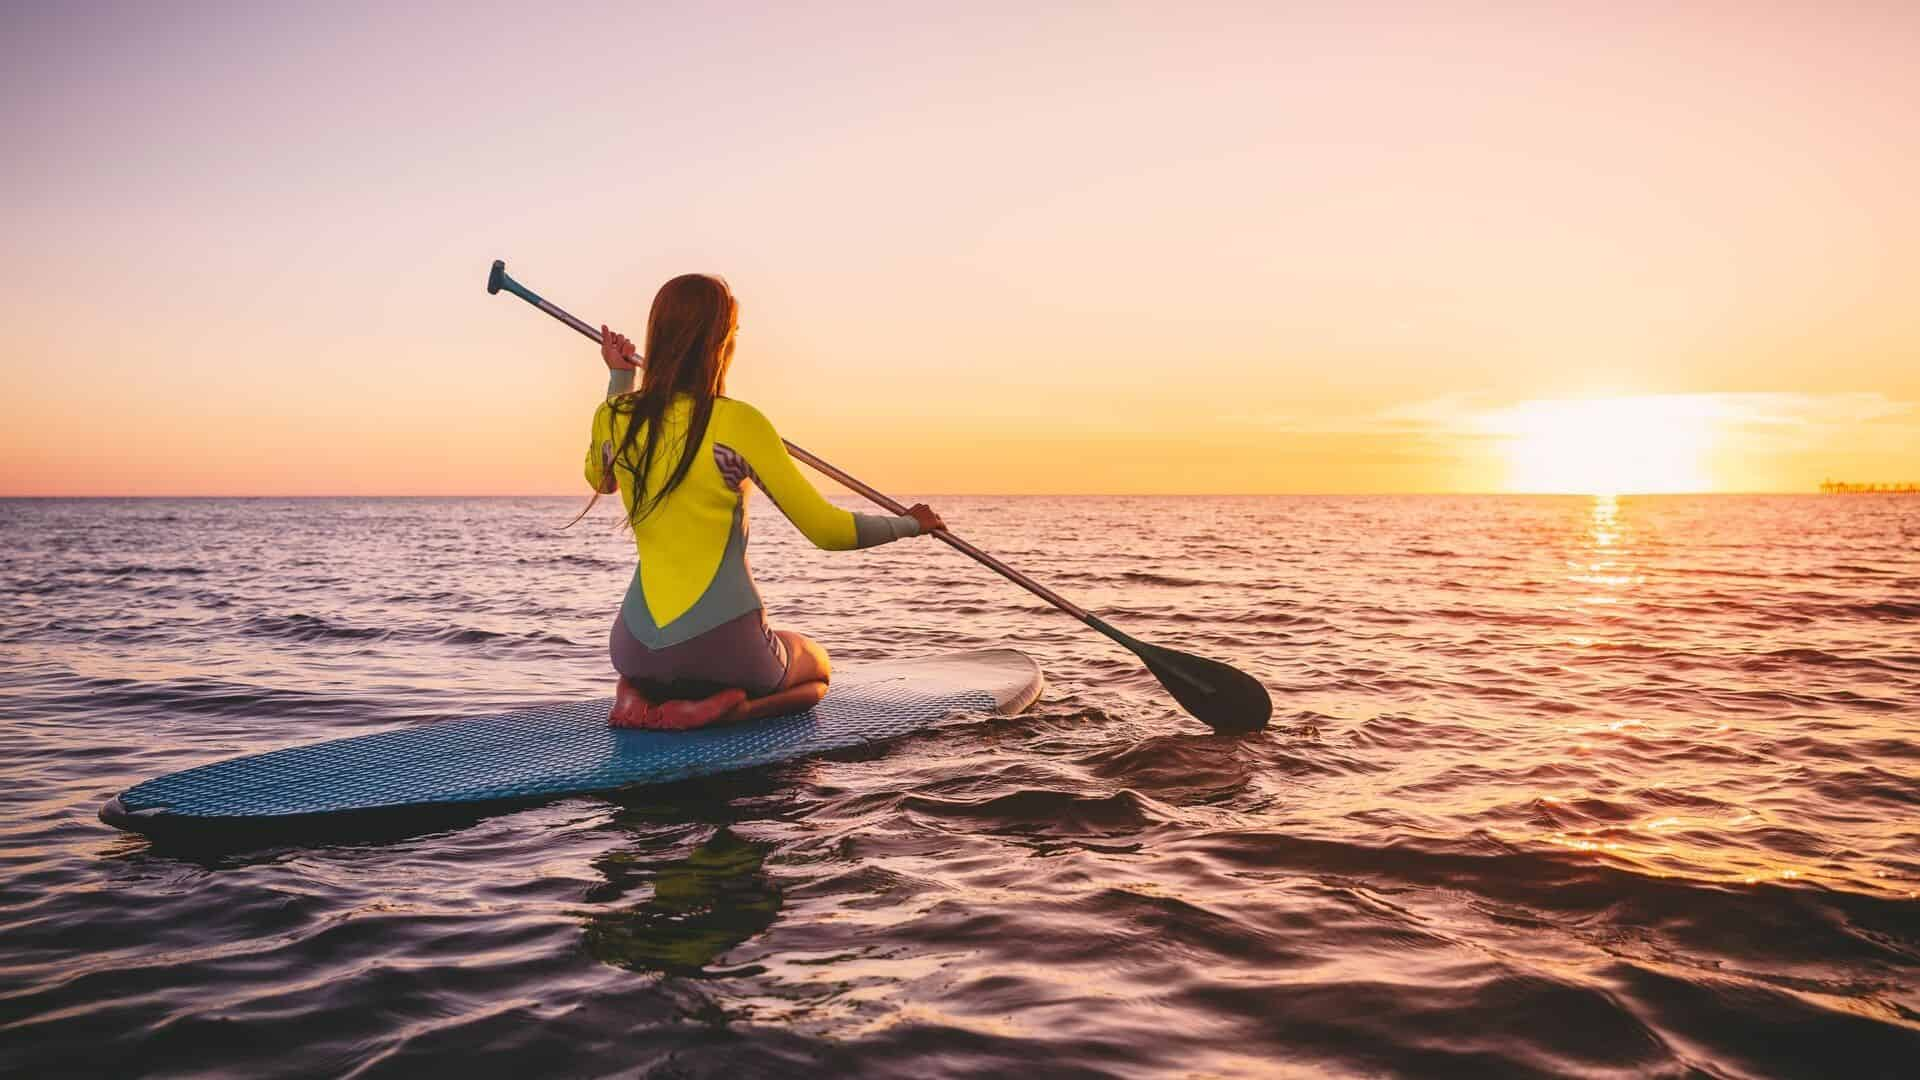 best gifts for paddleboarders